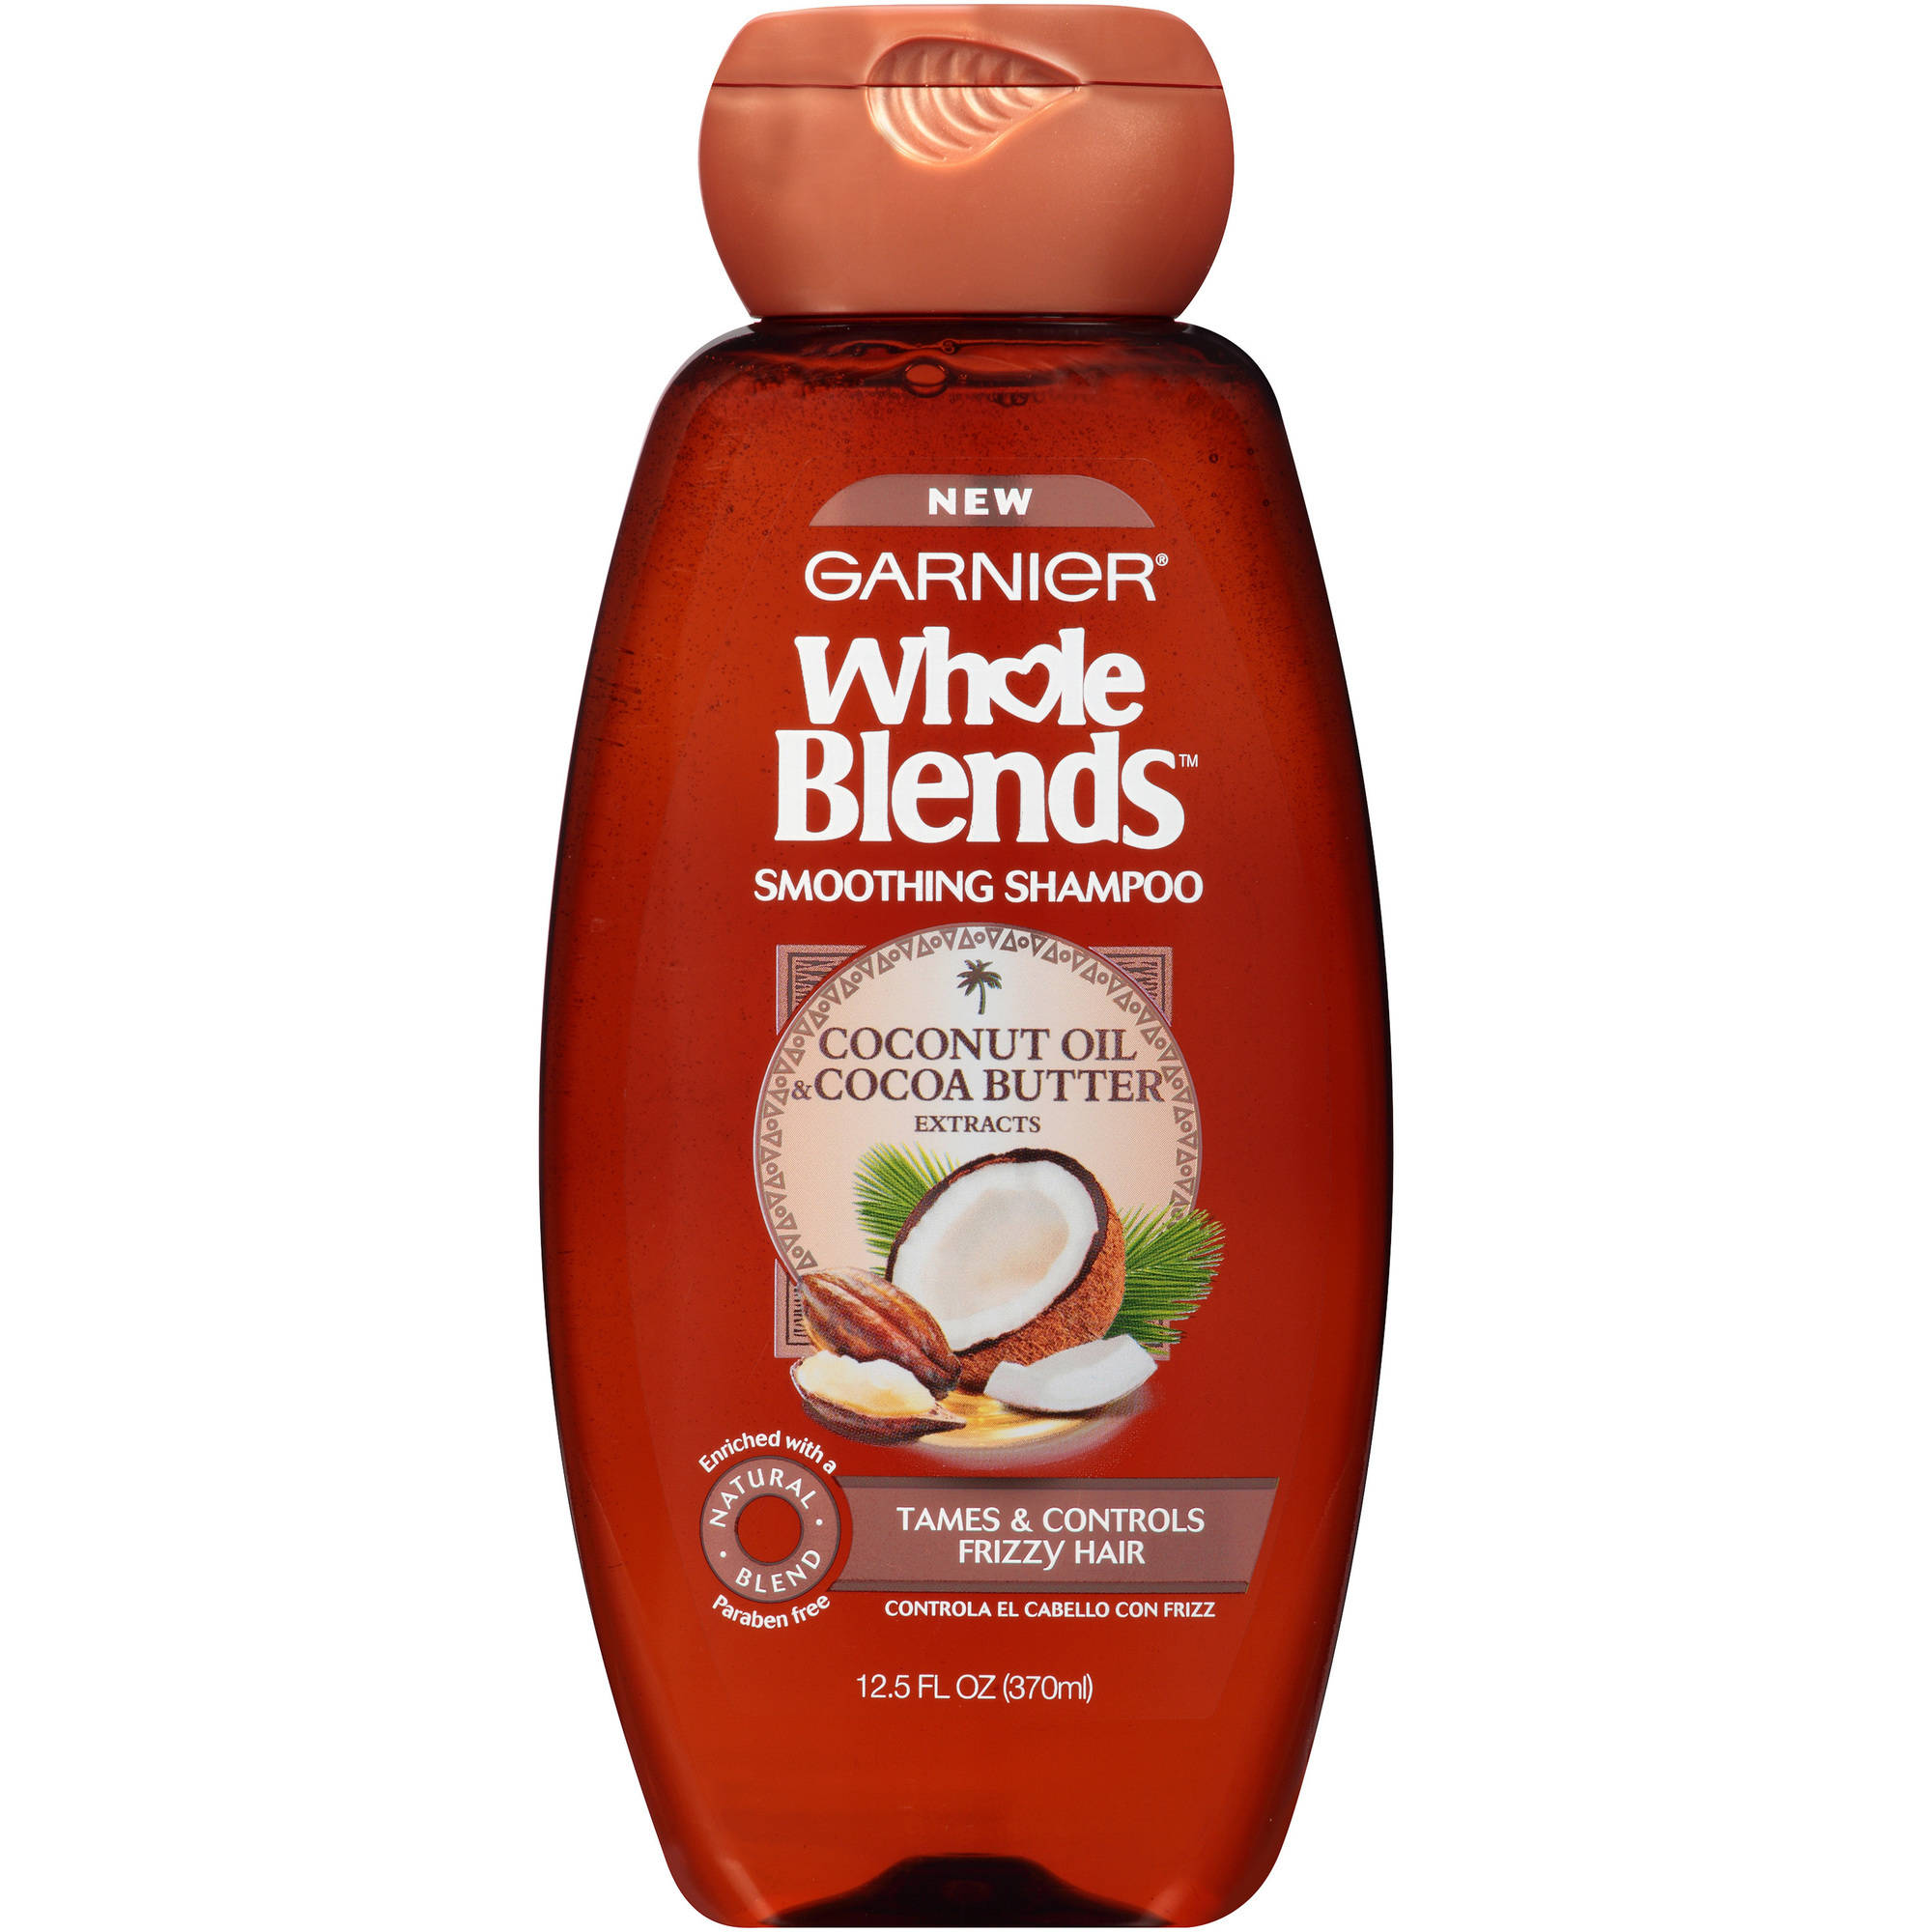 Garnier Whole Blends Coconut Oil & Cocoa Butter Extracts Smoothing Shampoo, 12.5 fl oz